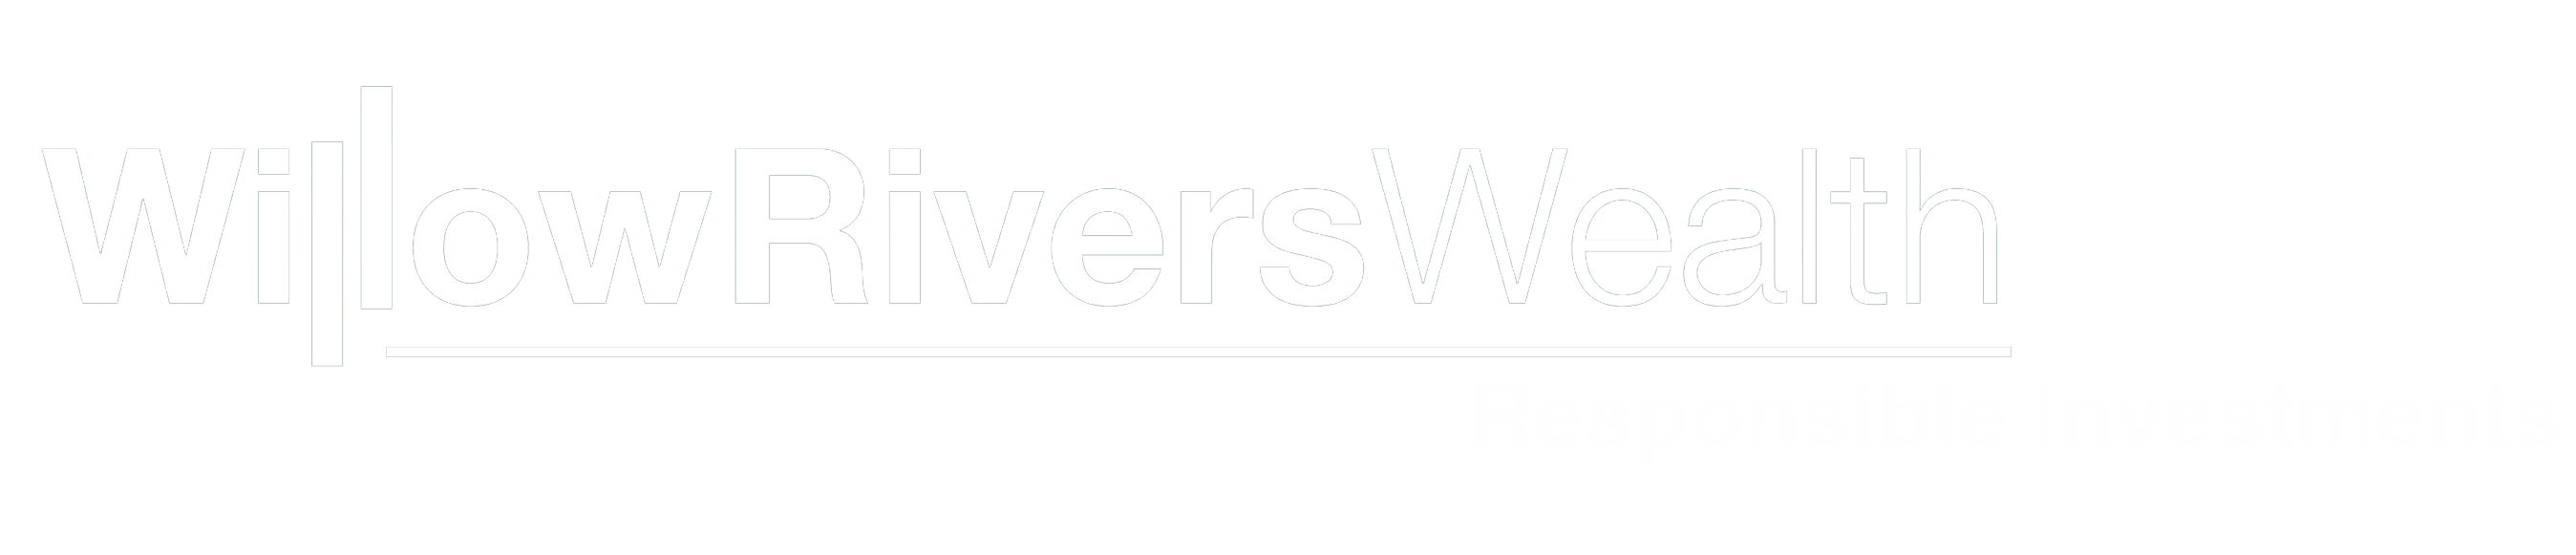 Willow Rivers Logo